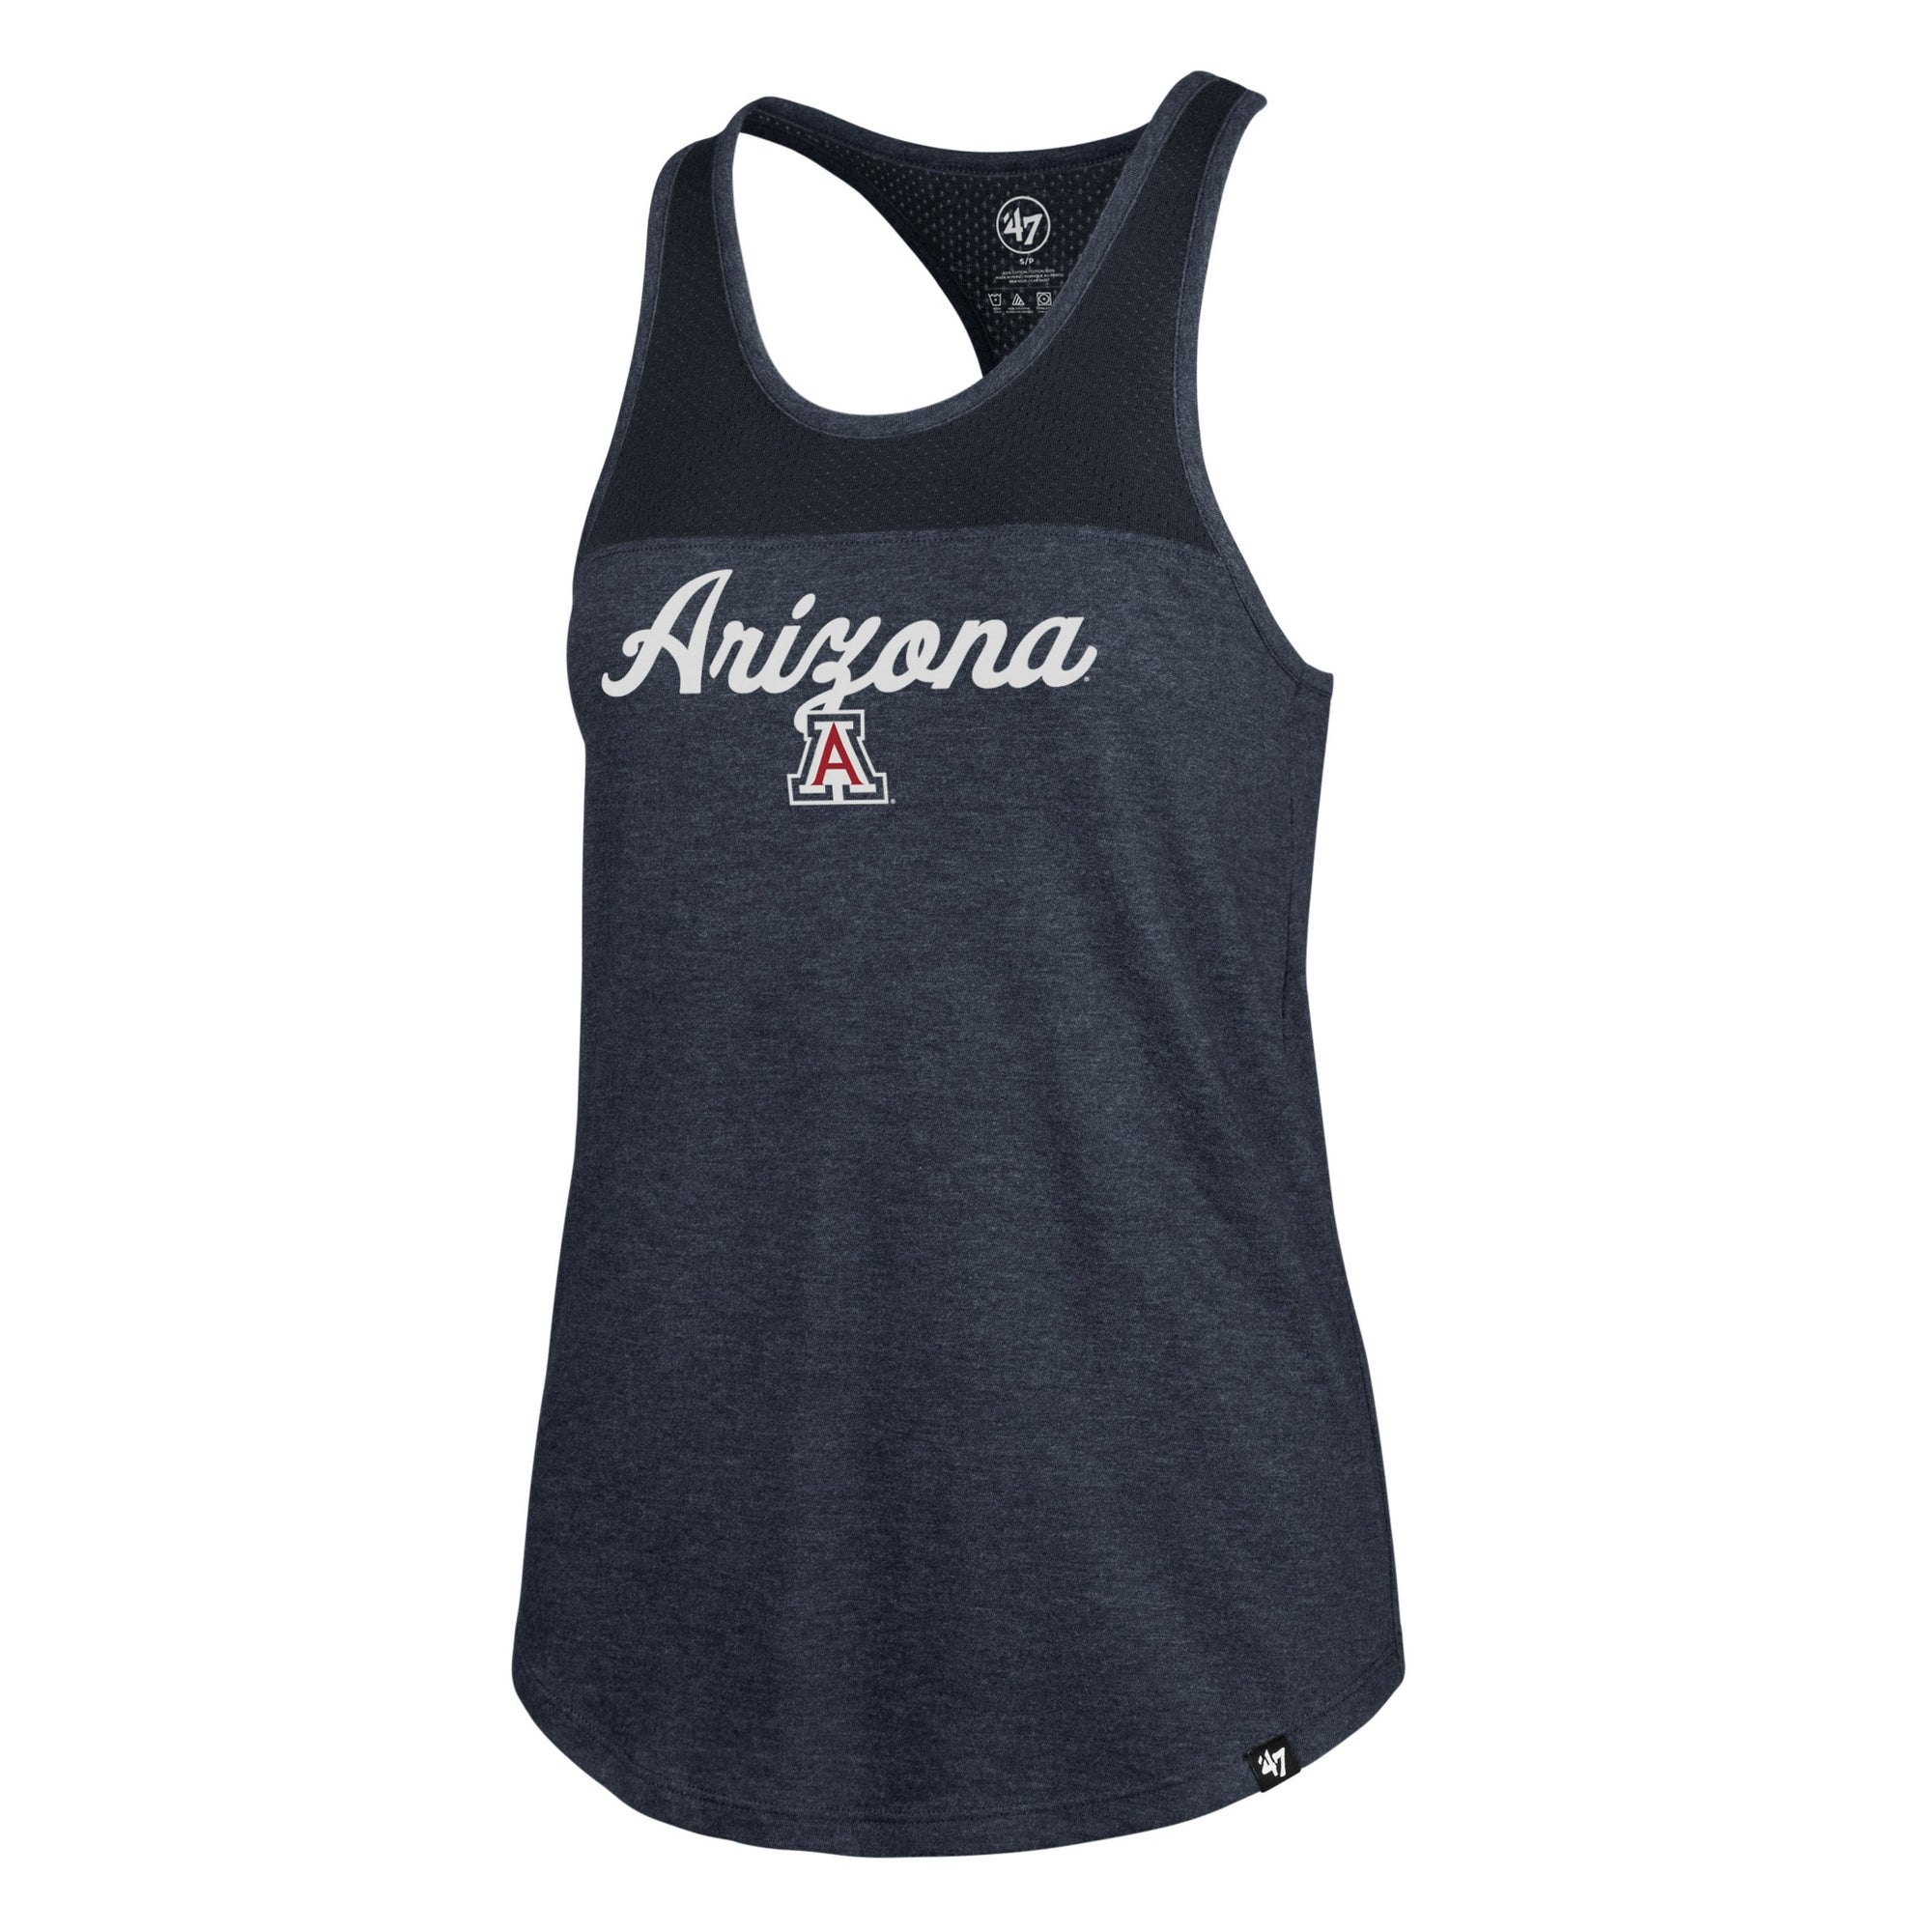 NCAA Arizona Wildcats Women's '47 All City Tank - Navy